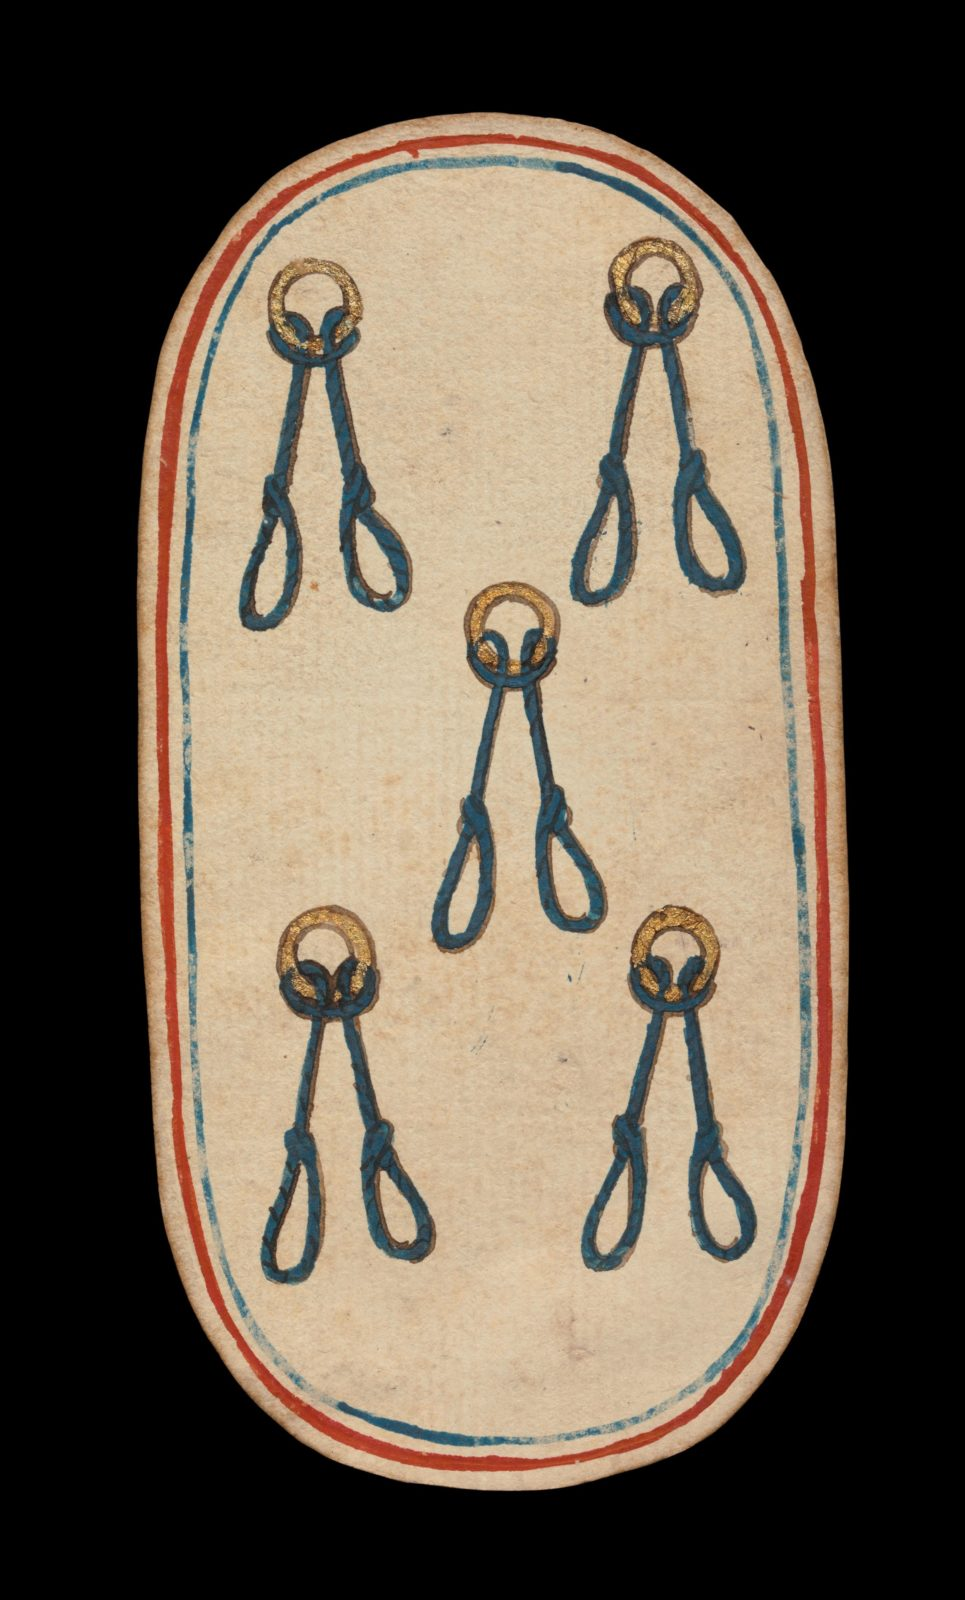 5 of Nooses, from The Cloisters Playing Cards